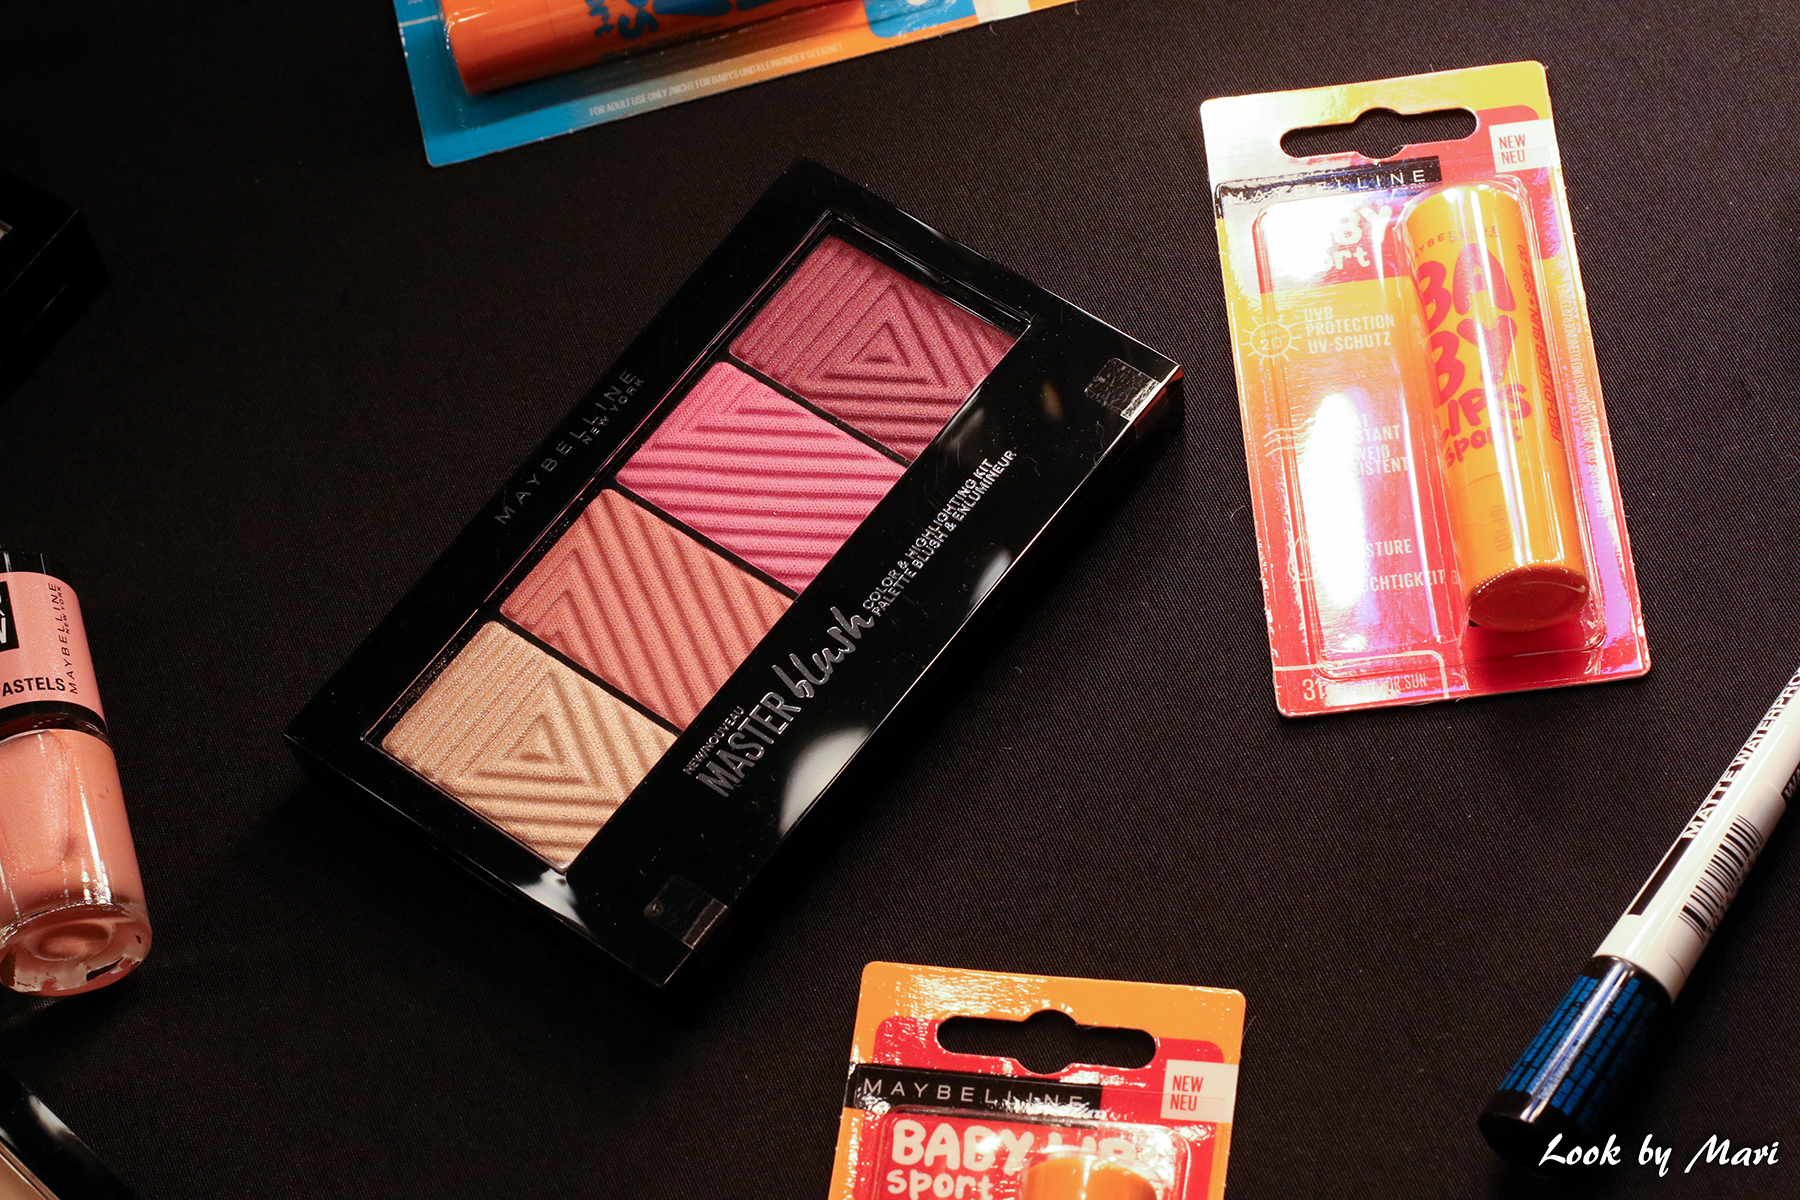 11 maybelline new master blush palette colors shades review blog